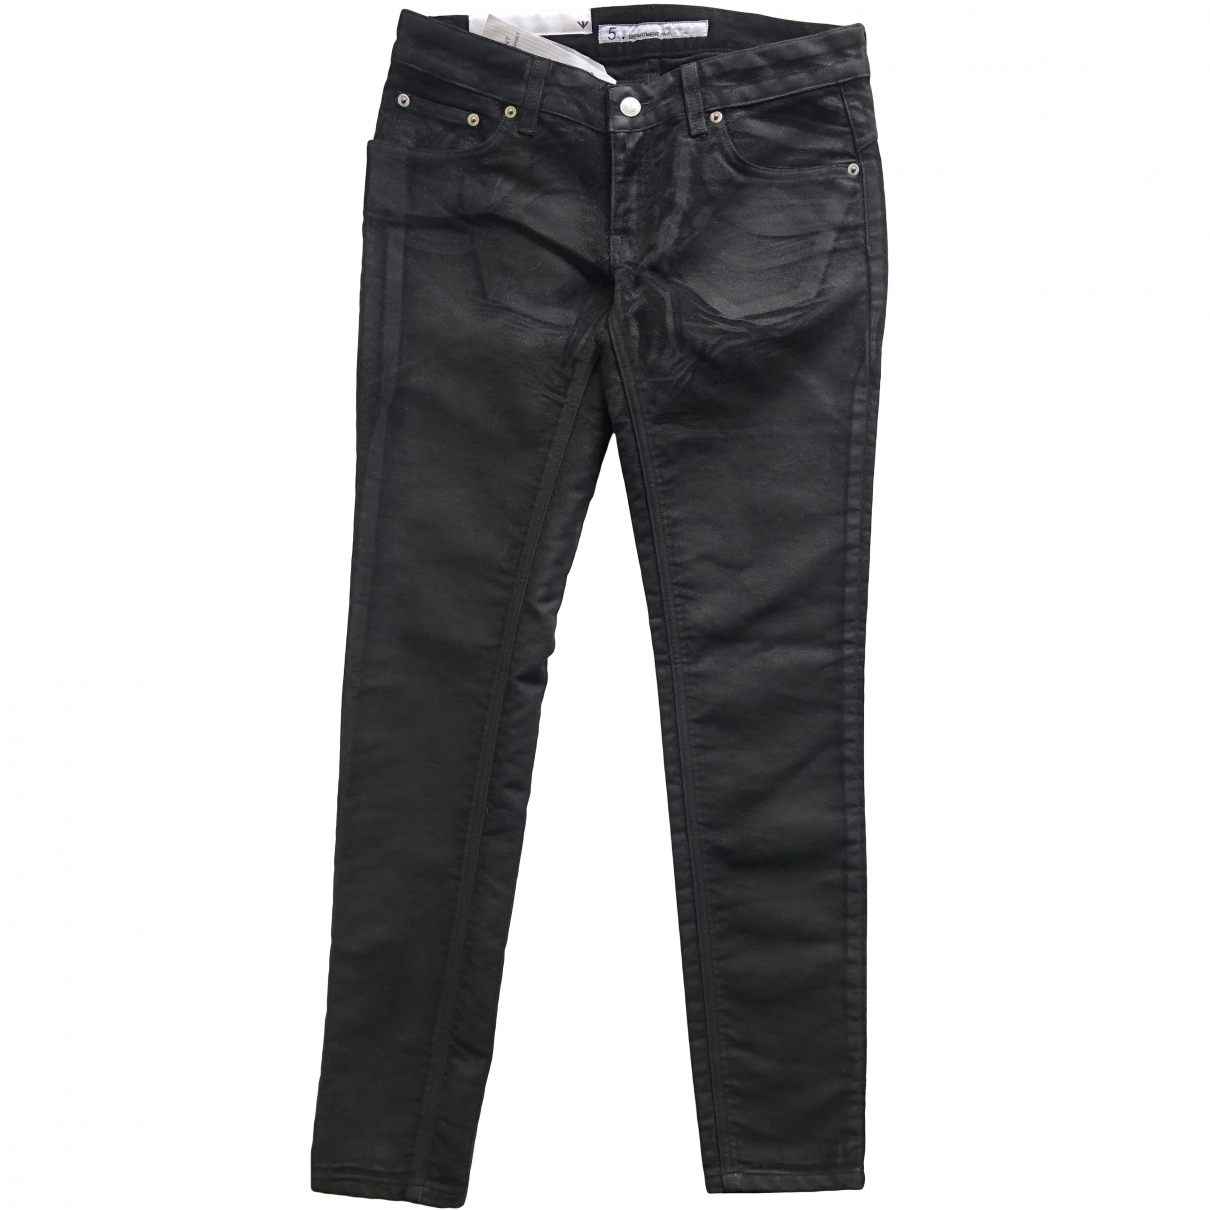 Department 5 N Black Cotton Jeans for Women 27 US